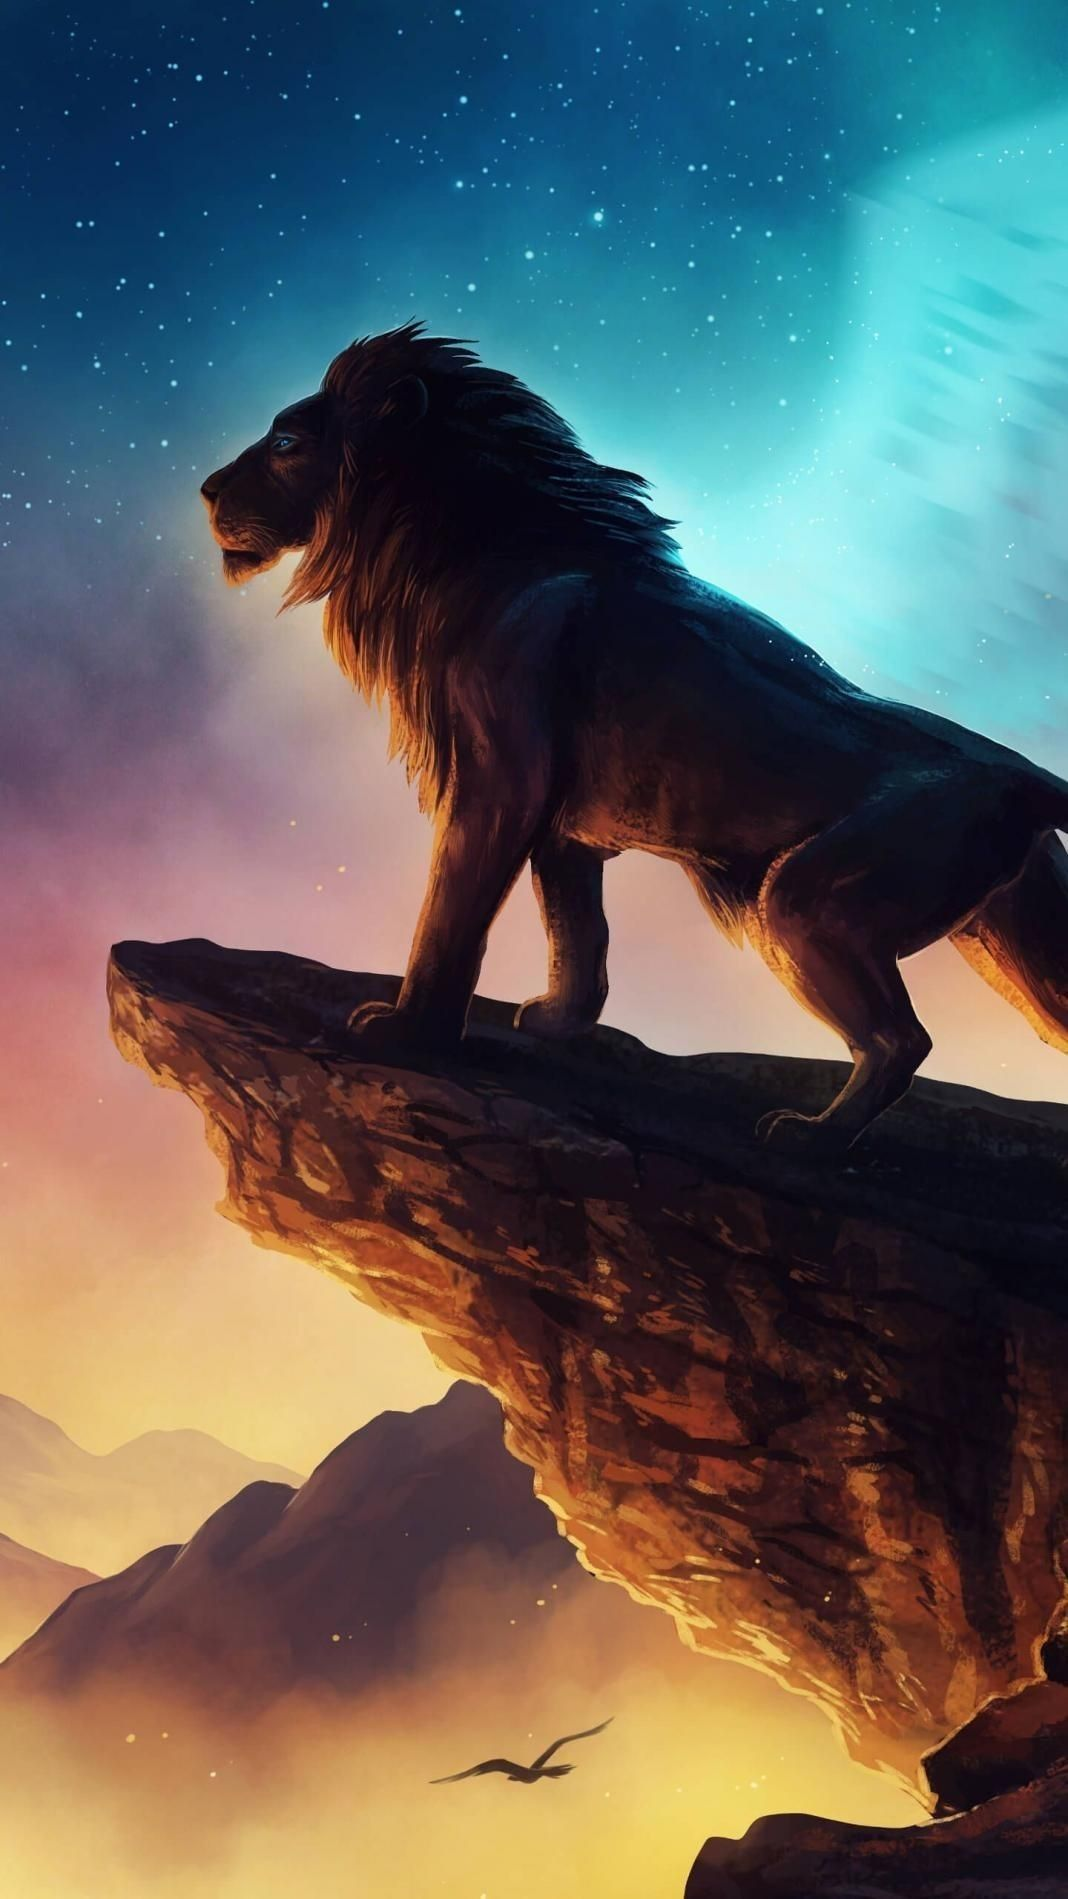 Pin By Kabeer Shahzad On Other S Lion Pictures Disney Lion King Lion Painting